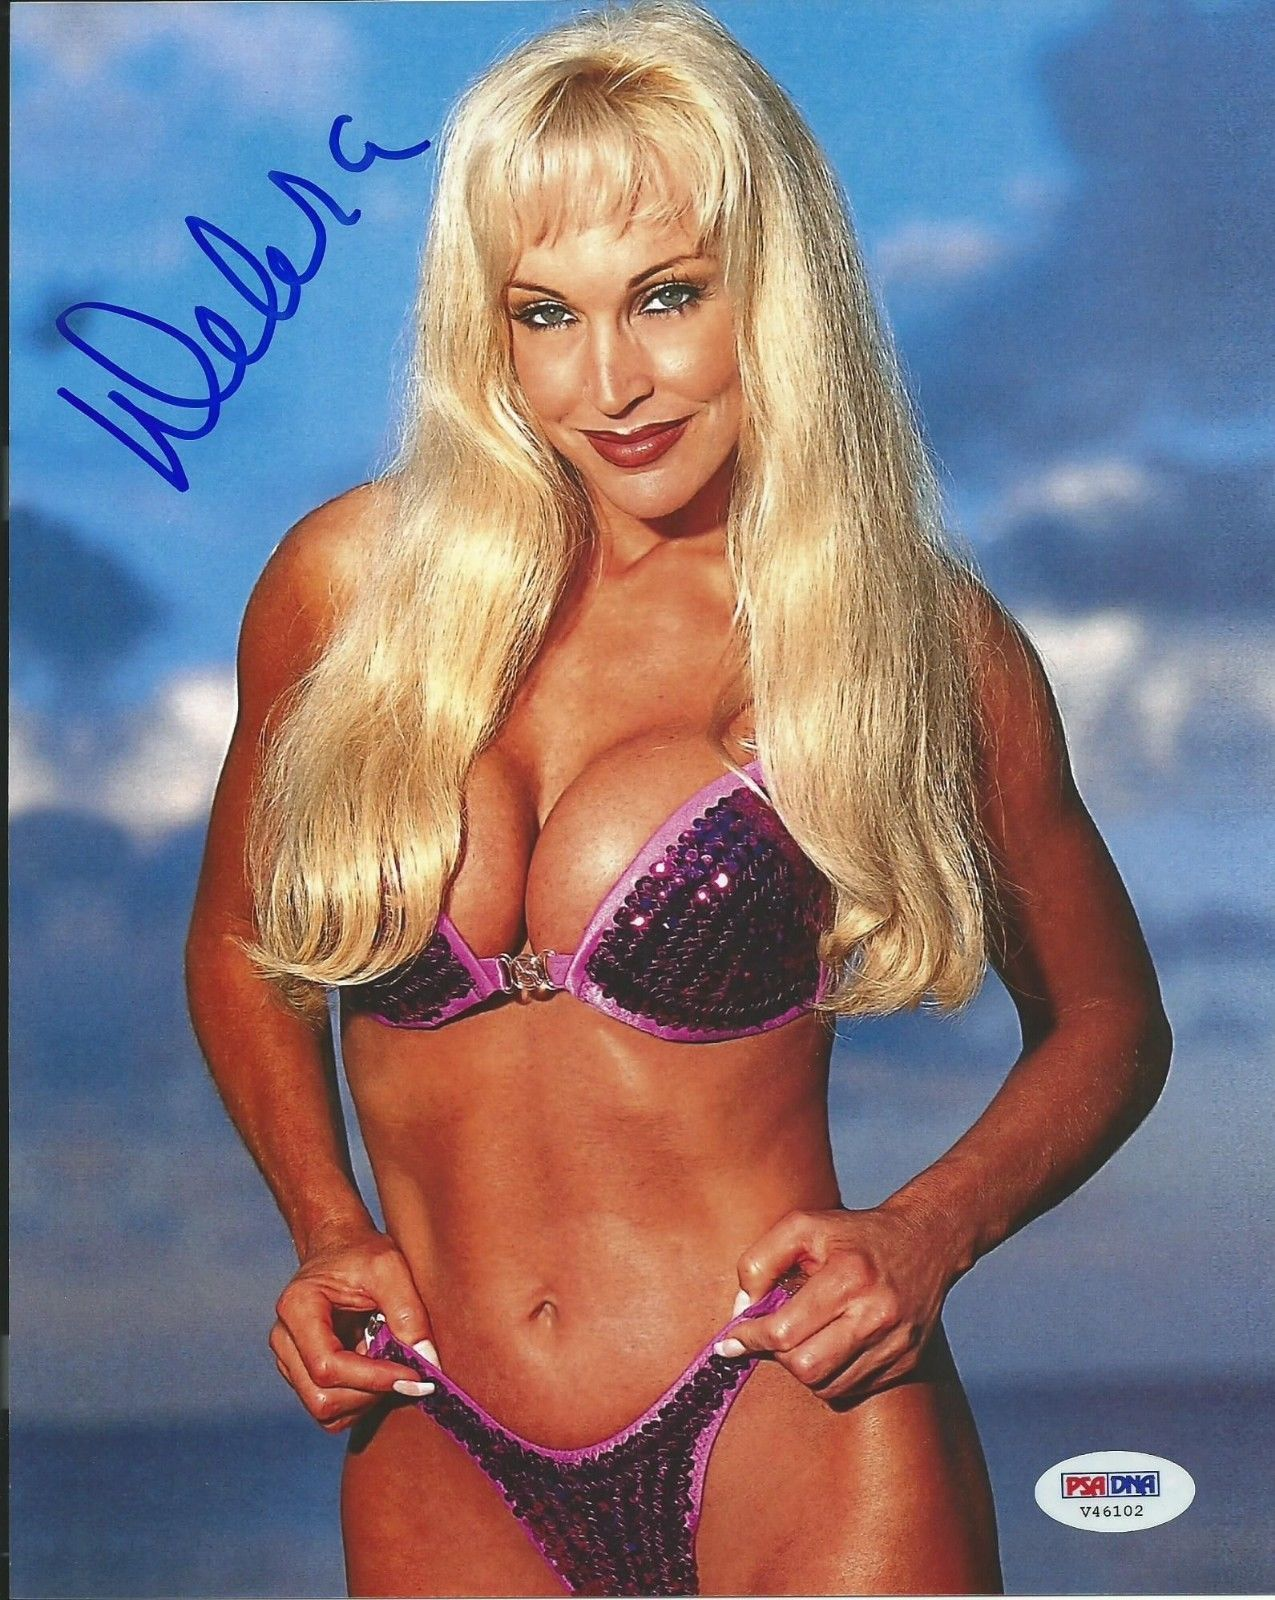 former wwe diva debra images high quality autograph - purple